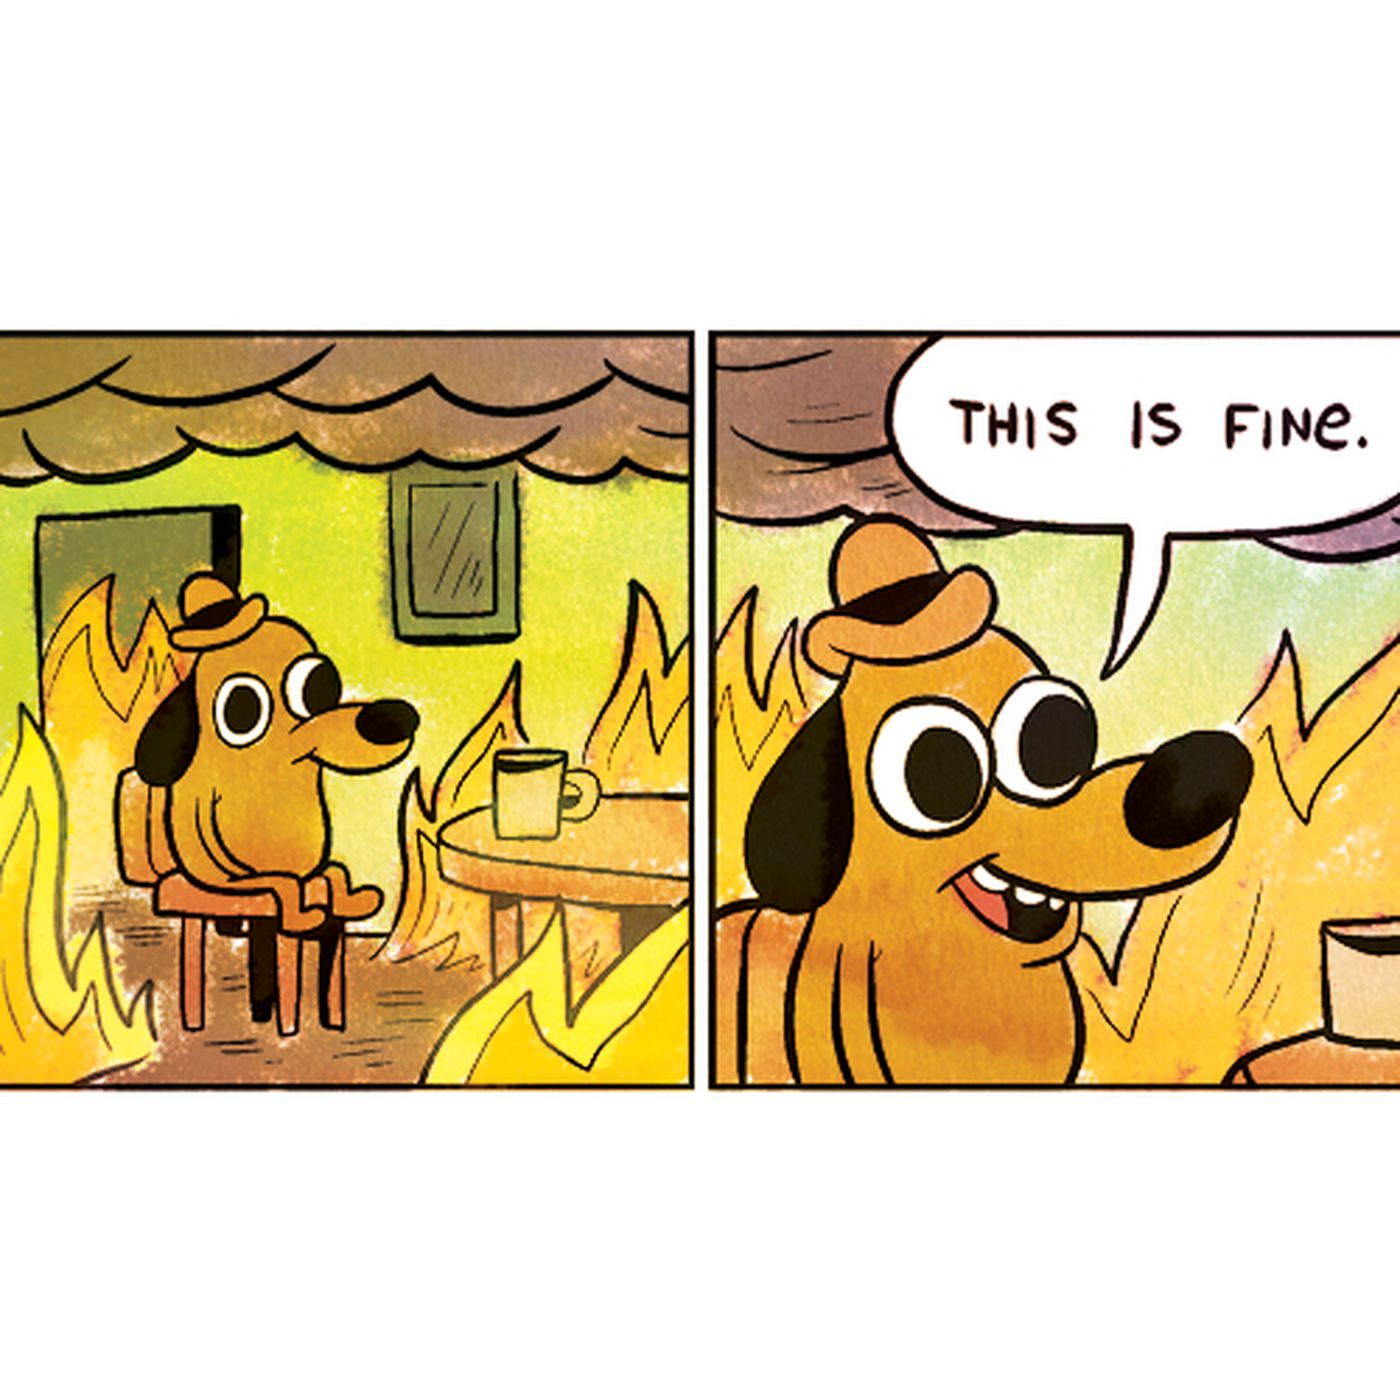 This Is Fine Creator Explains The Timelessness Of His Meme The Verge